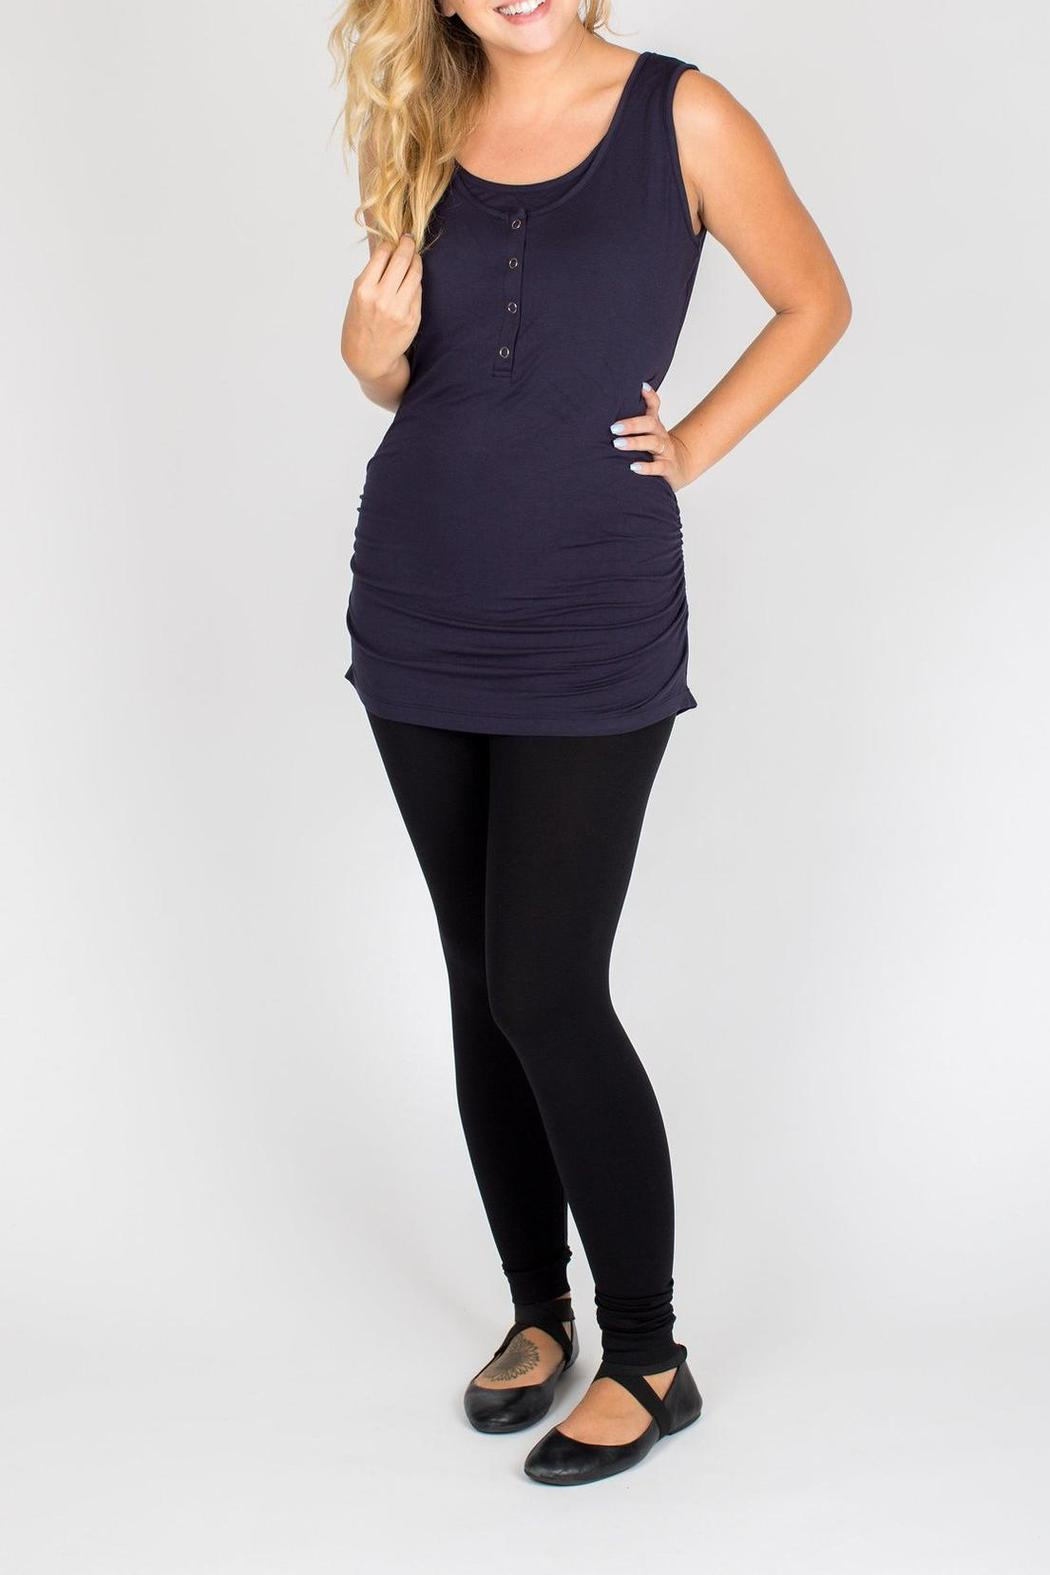 NOM Maternity Navy Nursing Tank Top - Front Cropped Image